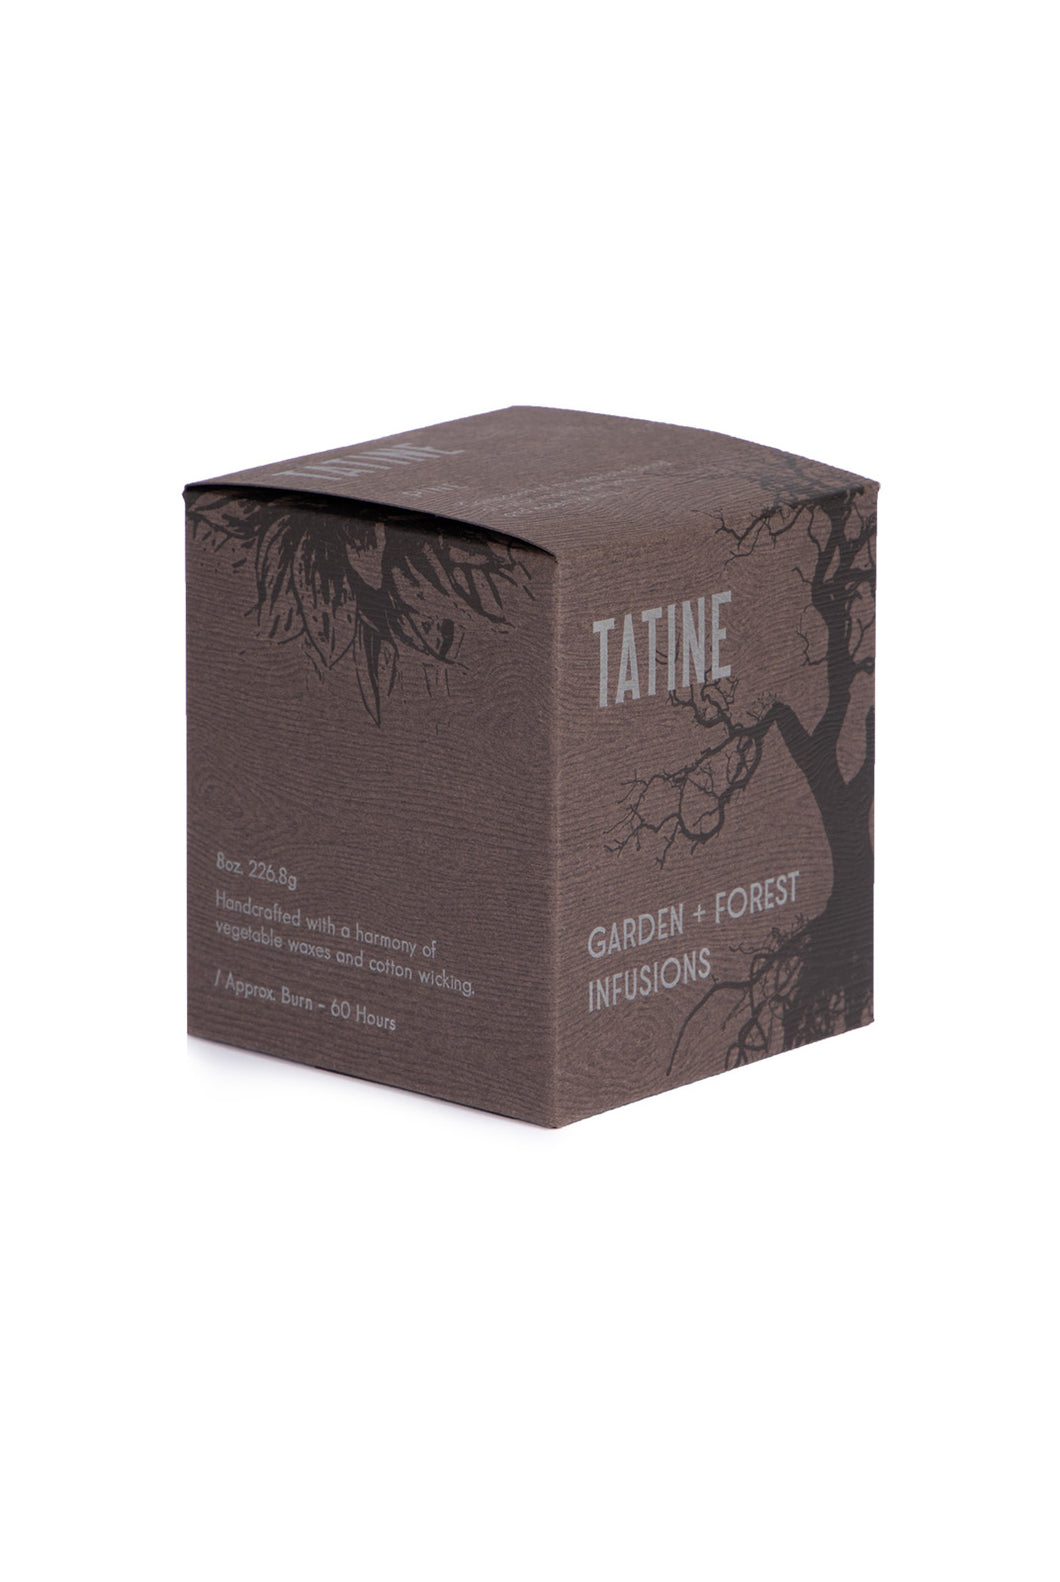 Tatine - Scented Candle - Garden and Forest Infusions Collection - Pine